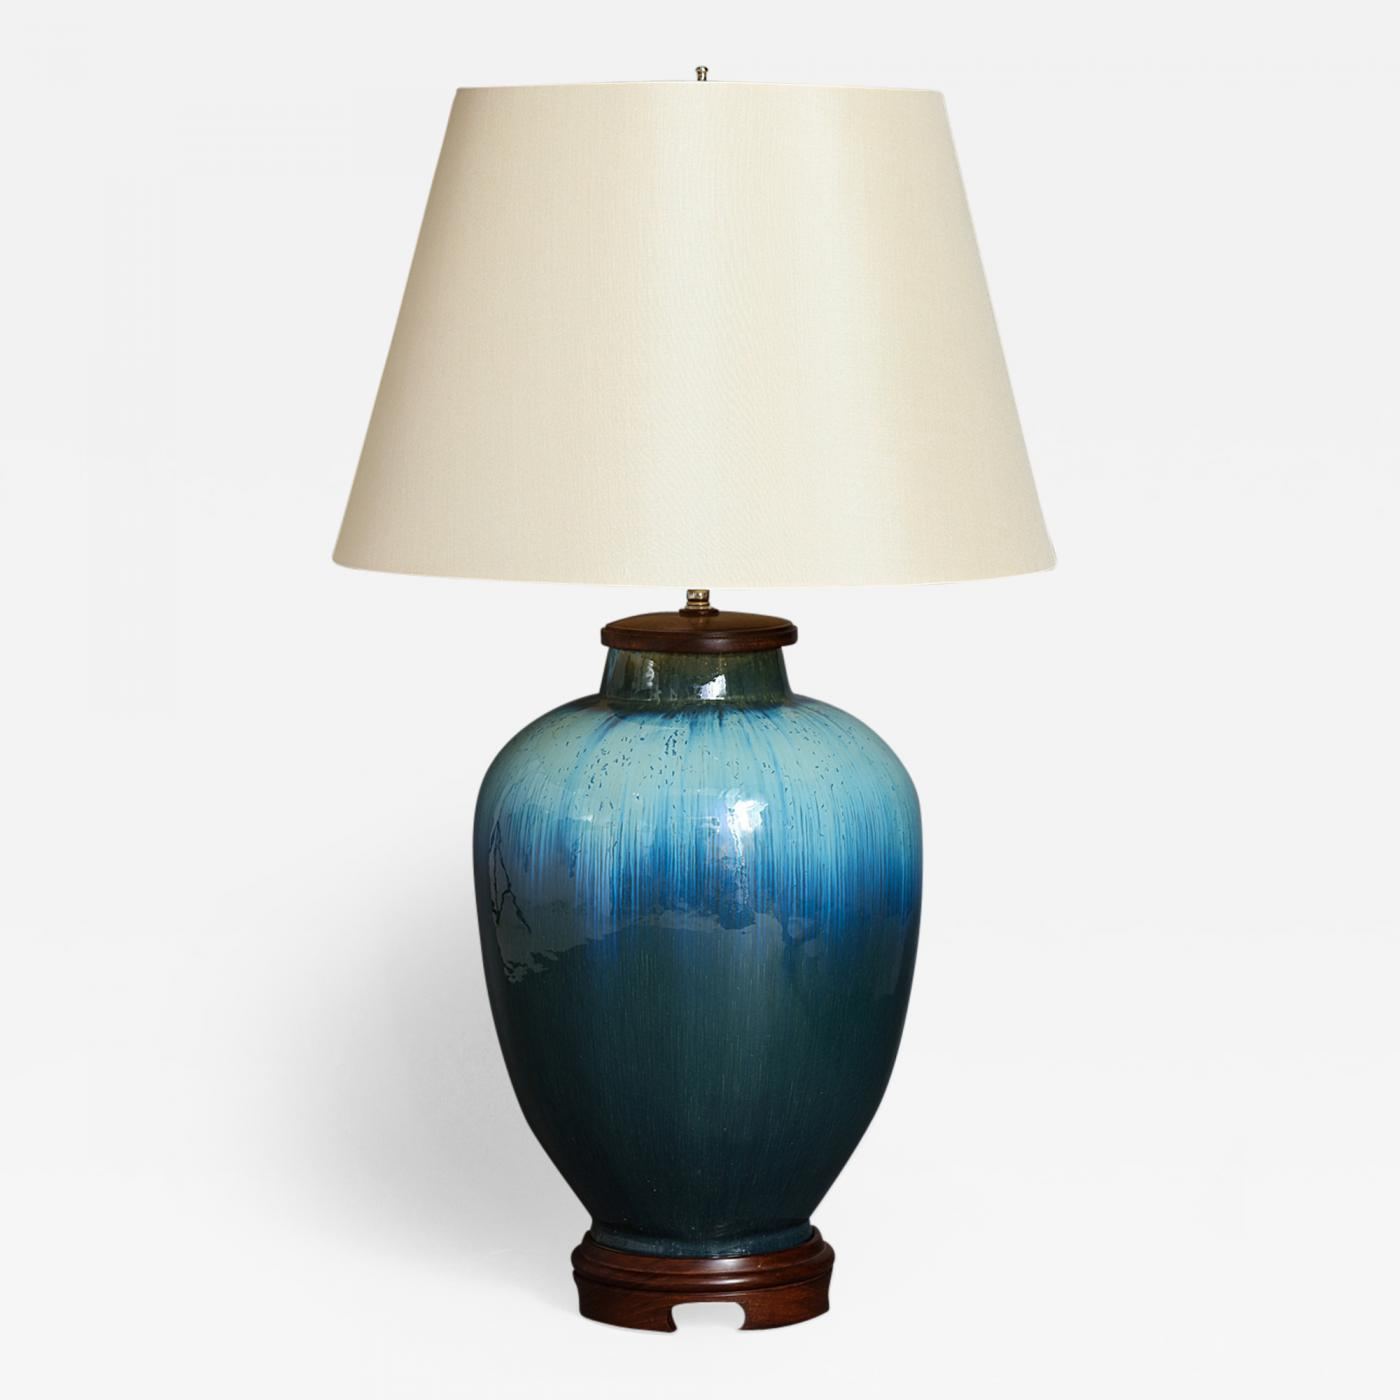 Scds ltd water jar table lamp by scds ltd listings furniture lighting table lamps geotapseo Choice Image